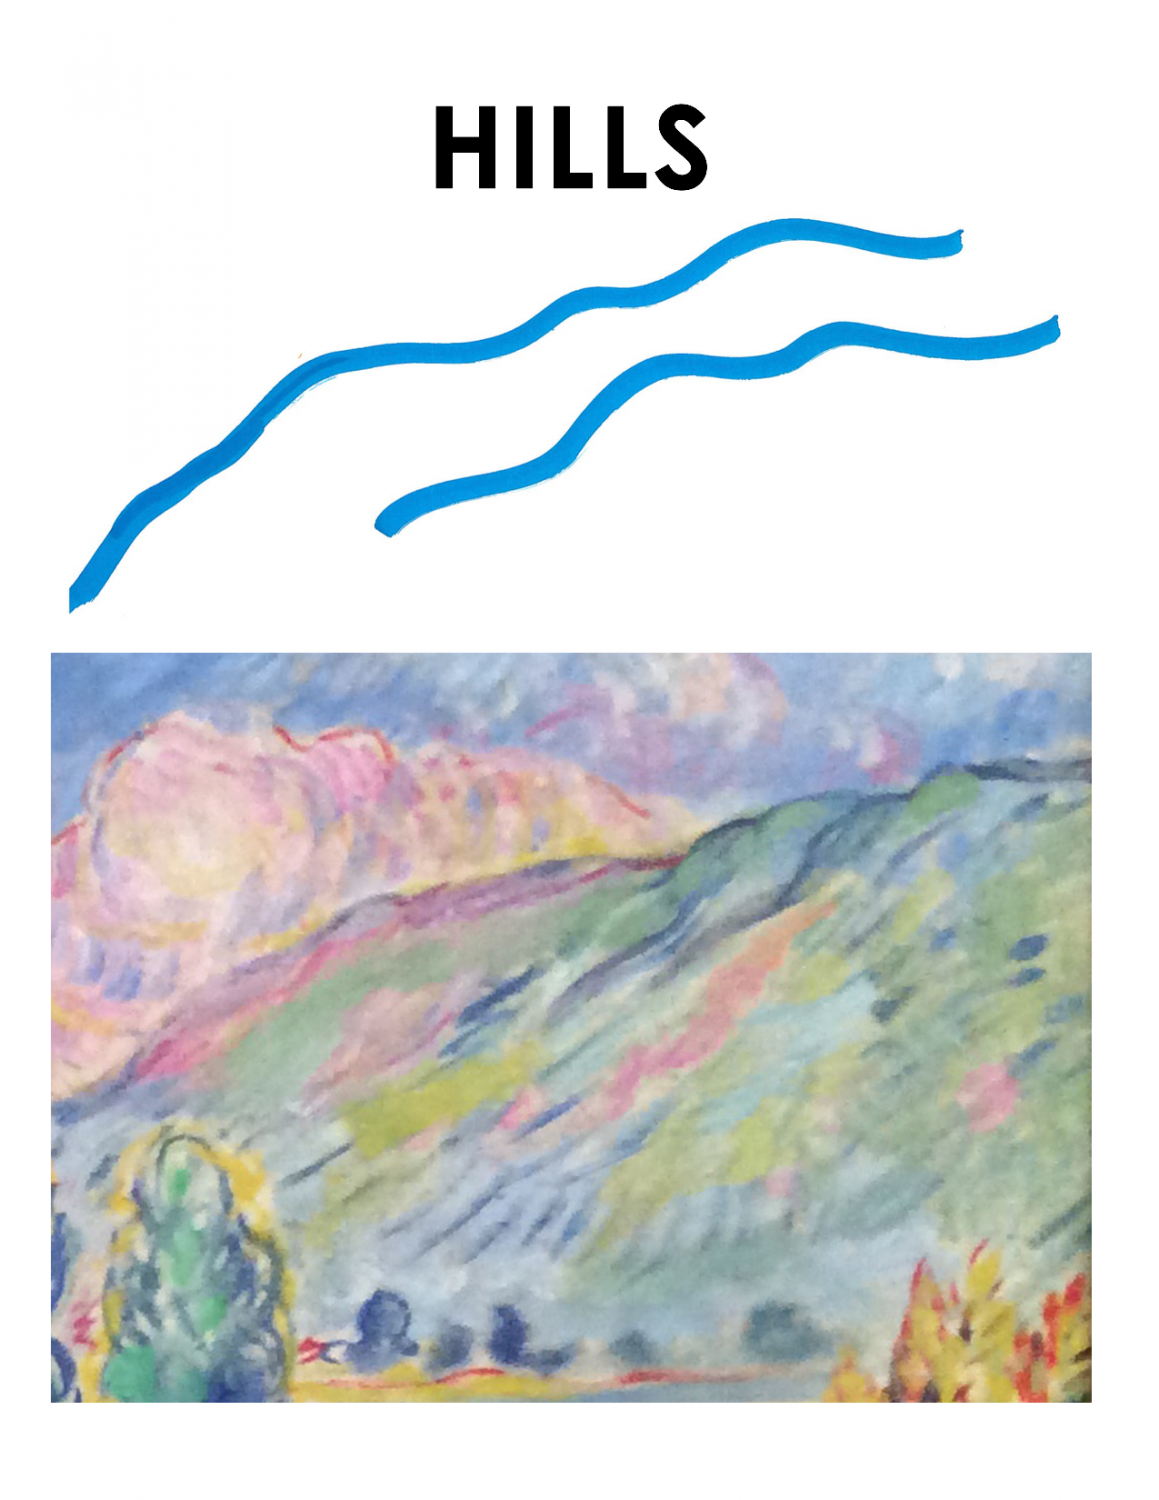 """Brightly colored landscape is on the bottom of this image. The top says """"Hills"""" and depicts two wavy blue lines that looks like the shape of some hills."""